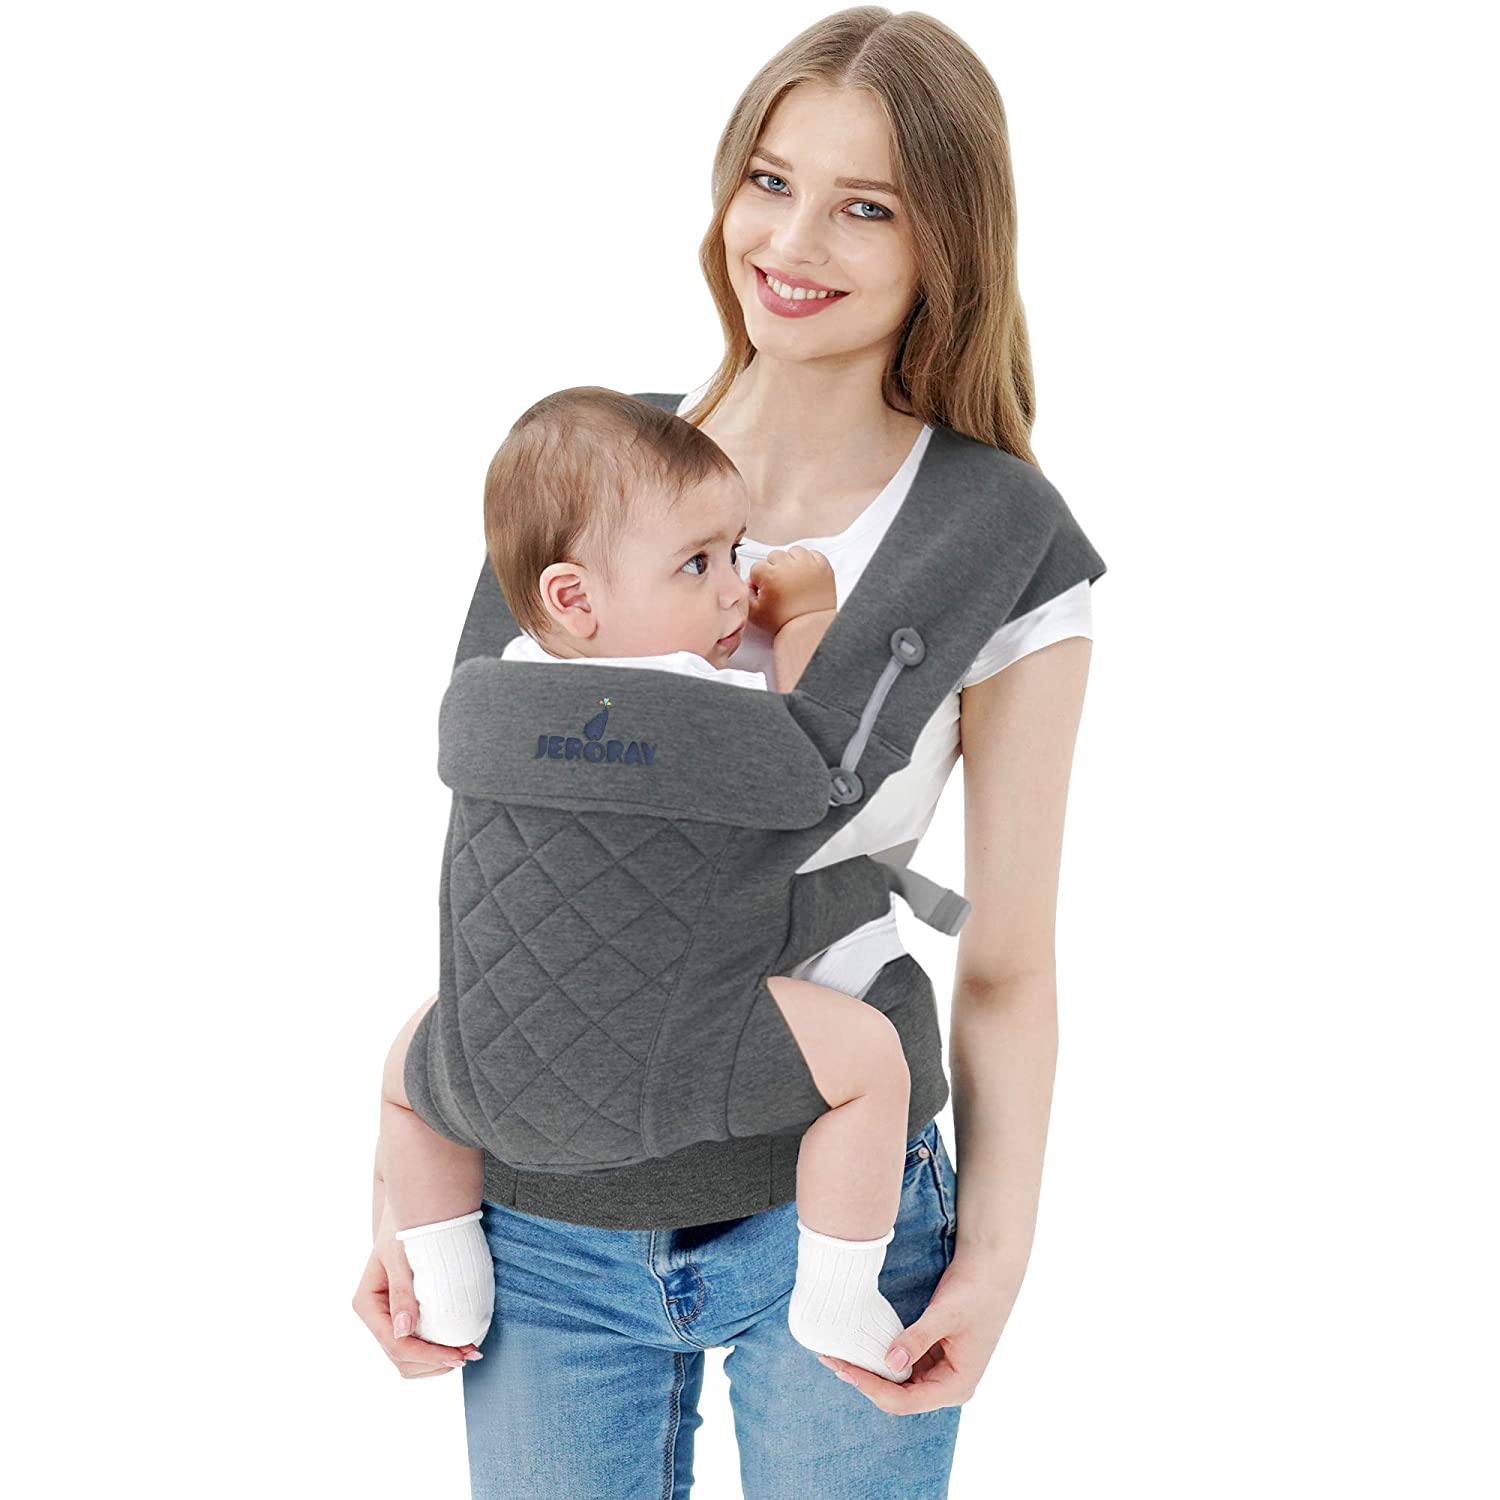 JERORAY-Baby-Carrier,All Carry Position,All Seasons,Dual Protected Waistband and Zipper Opening,Softness Breathable 3D Jersey,for Newborns 8-25 Pounds,Heather Grey